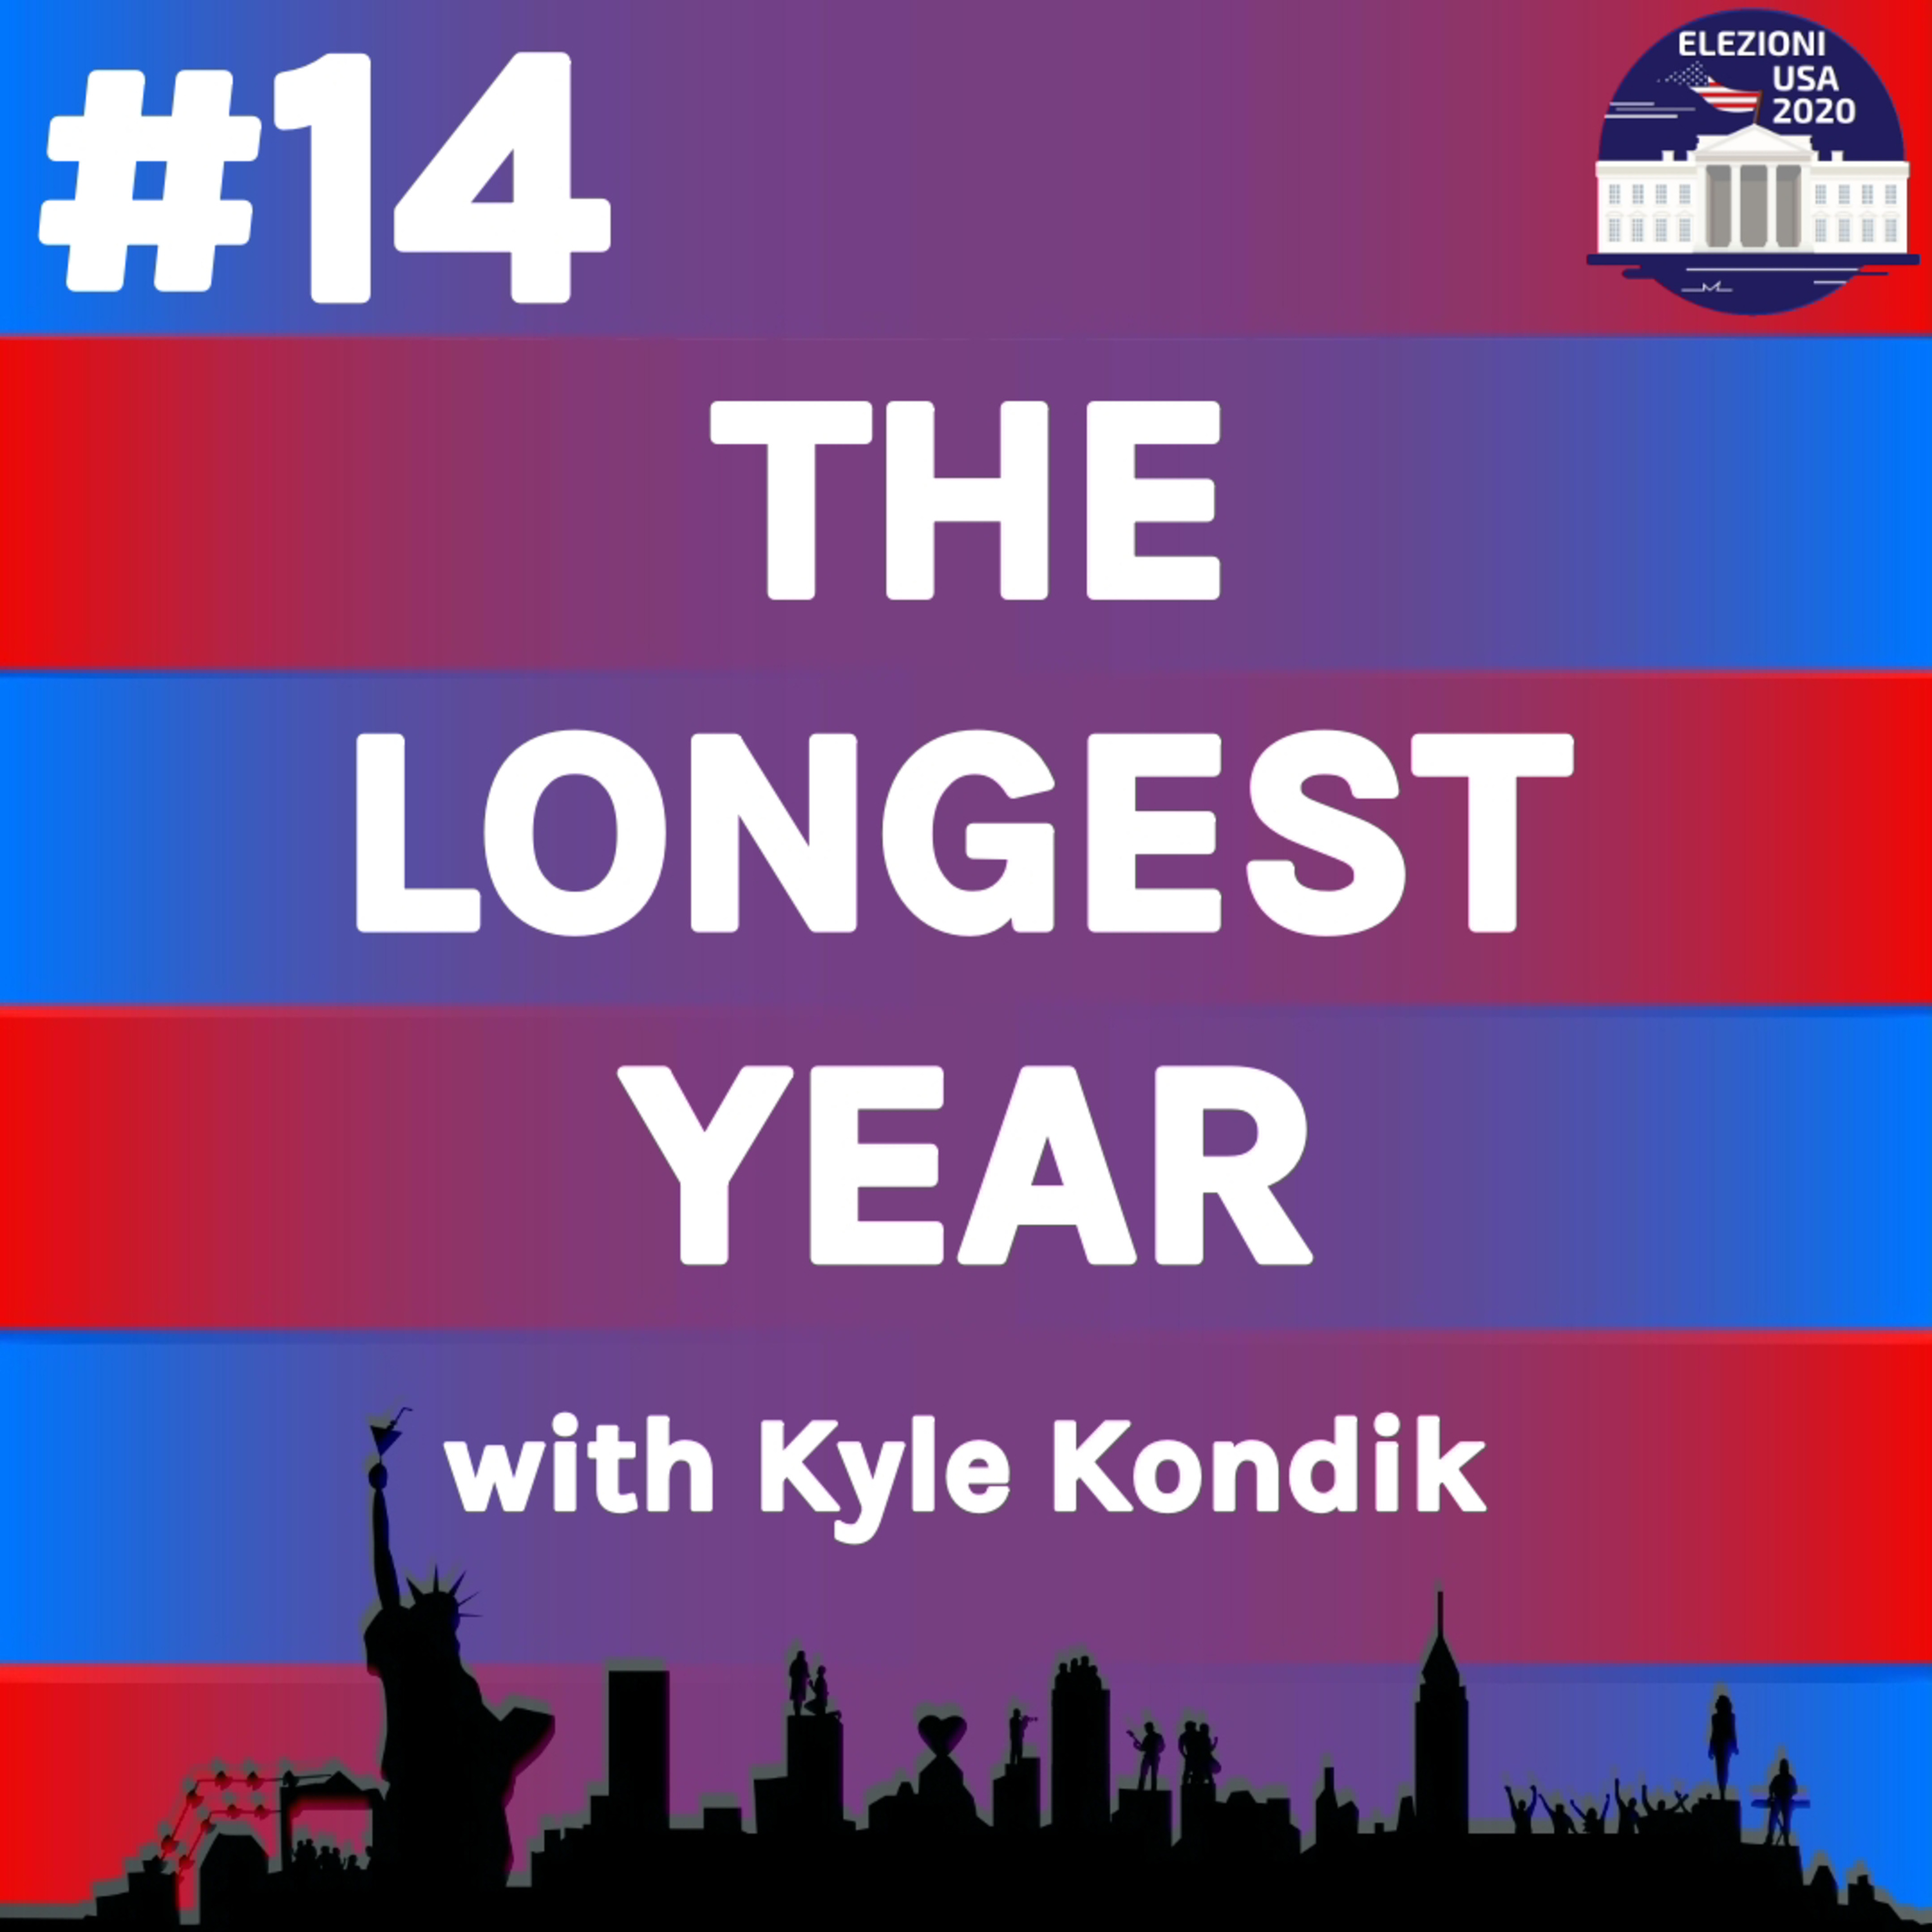 The Longest Year with Kyle Kondik